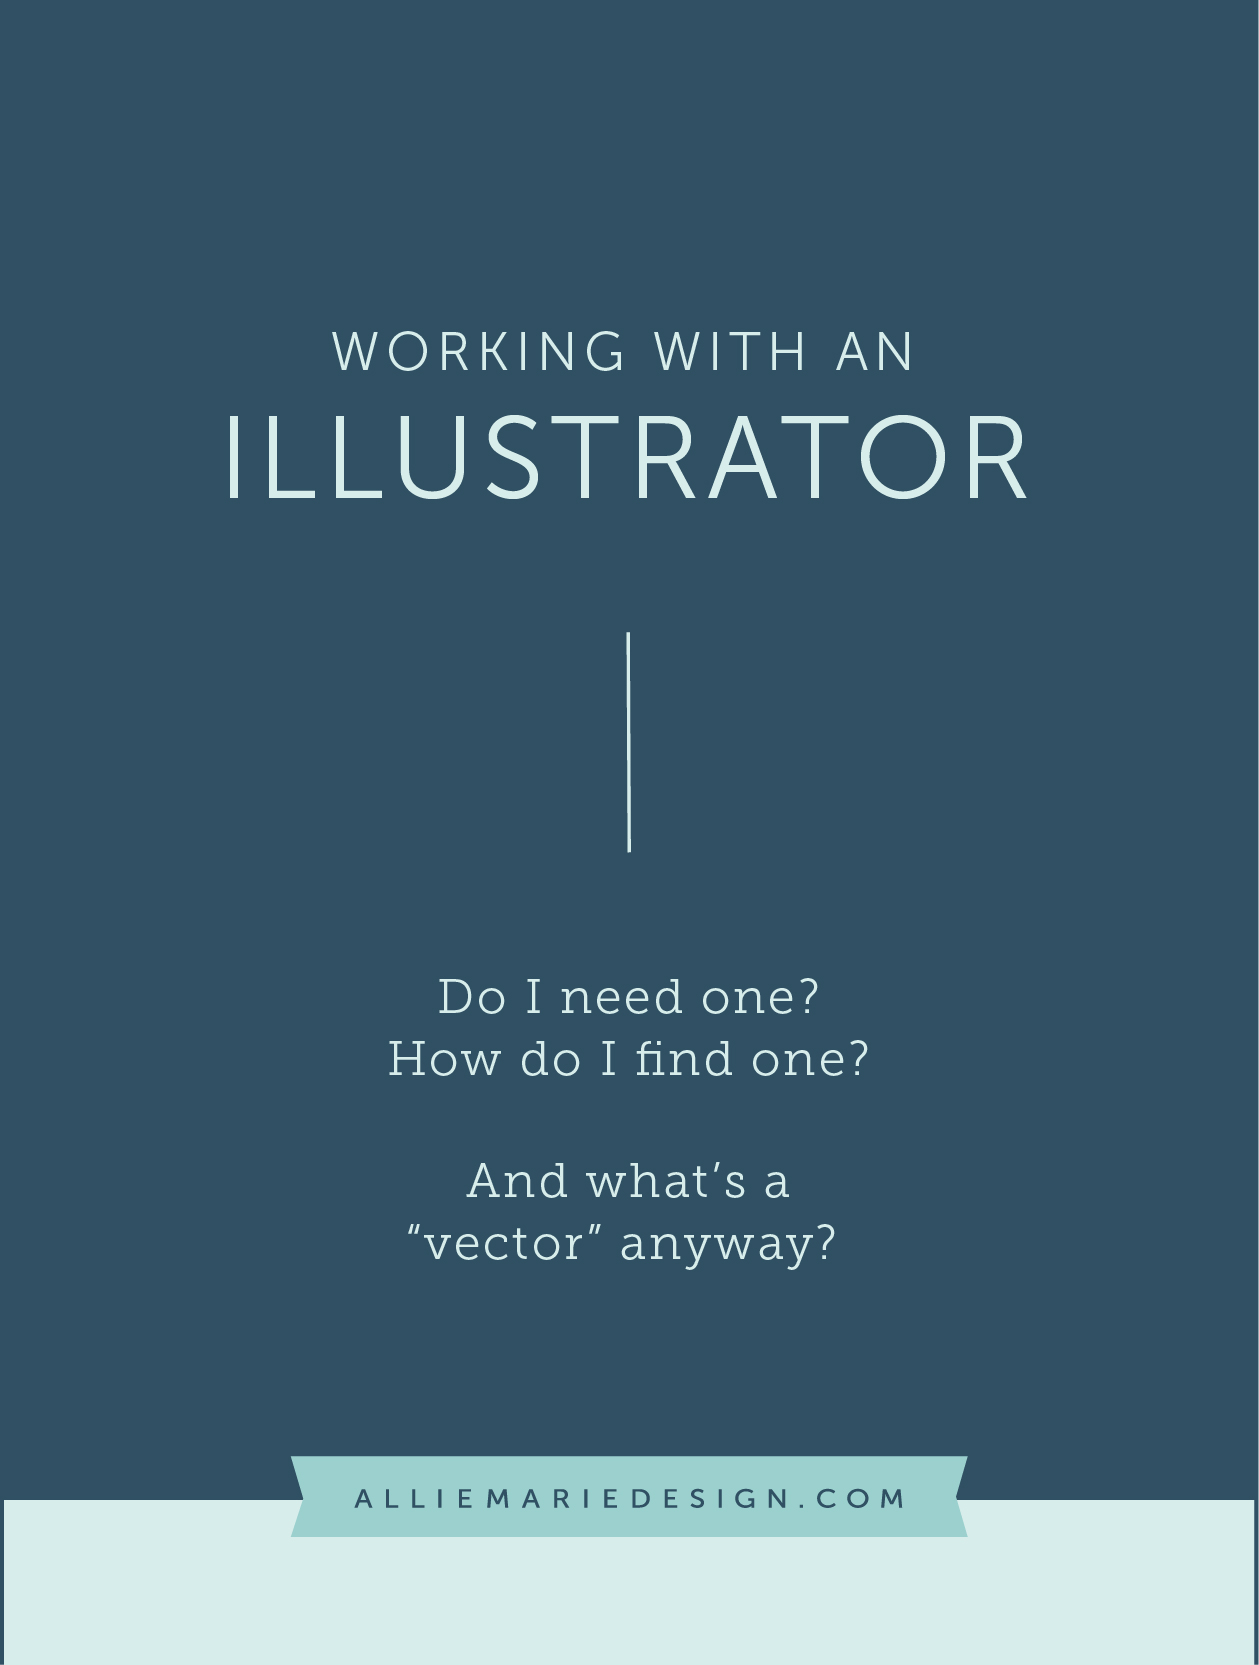 Working with an Illustrator: Do I need one, how do I find one and what's a vector anyway?